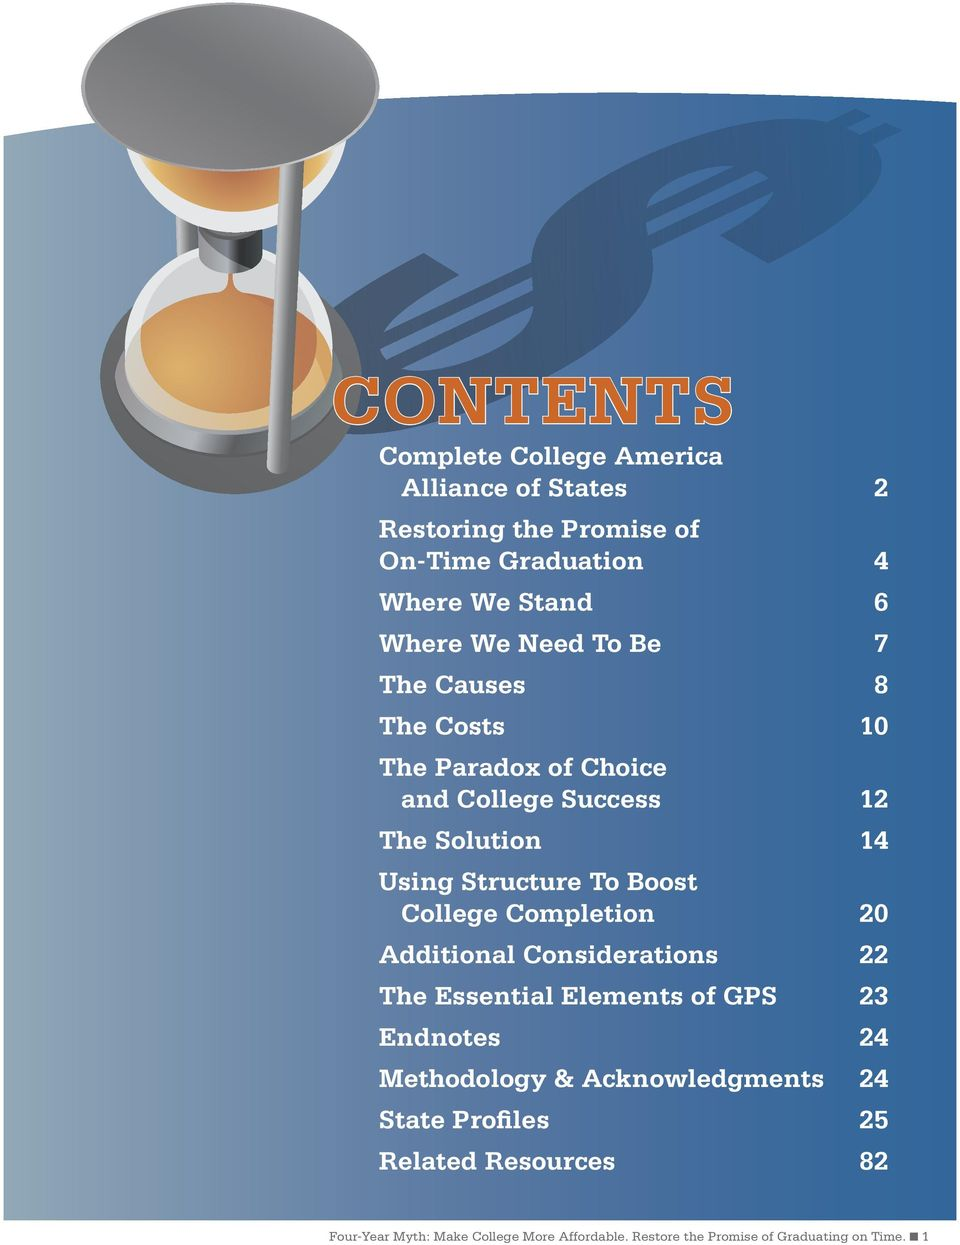 College Completion 20 Additional Considerations 22 The Essential Elements of GPS 23 Endnotes 24 Methodology & Acknowledgments